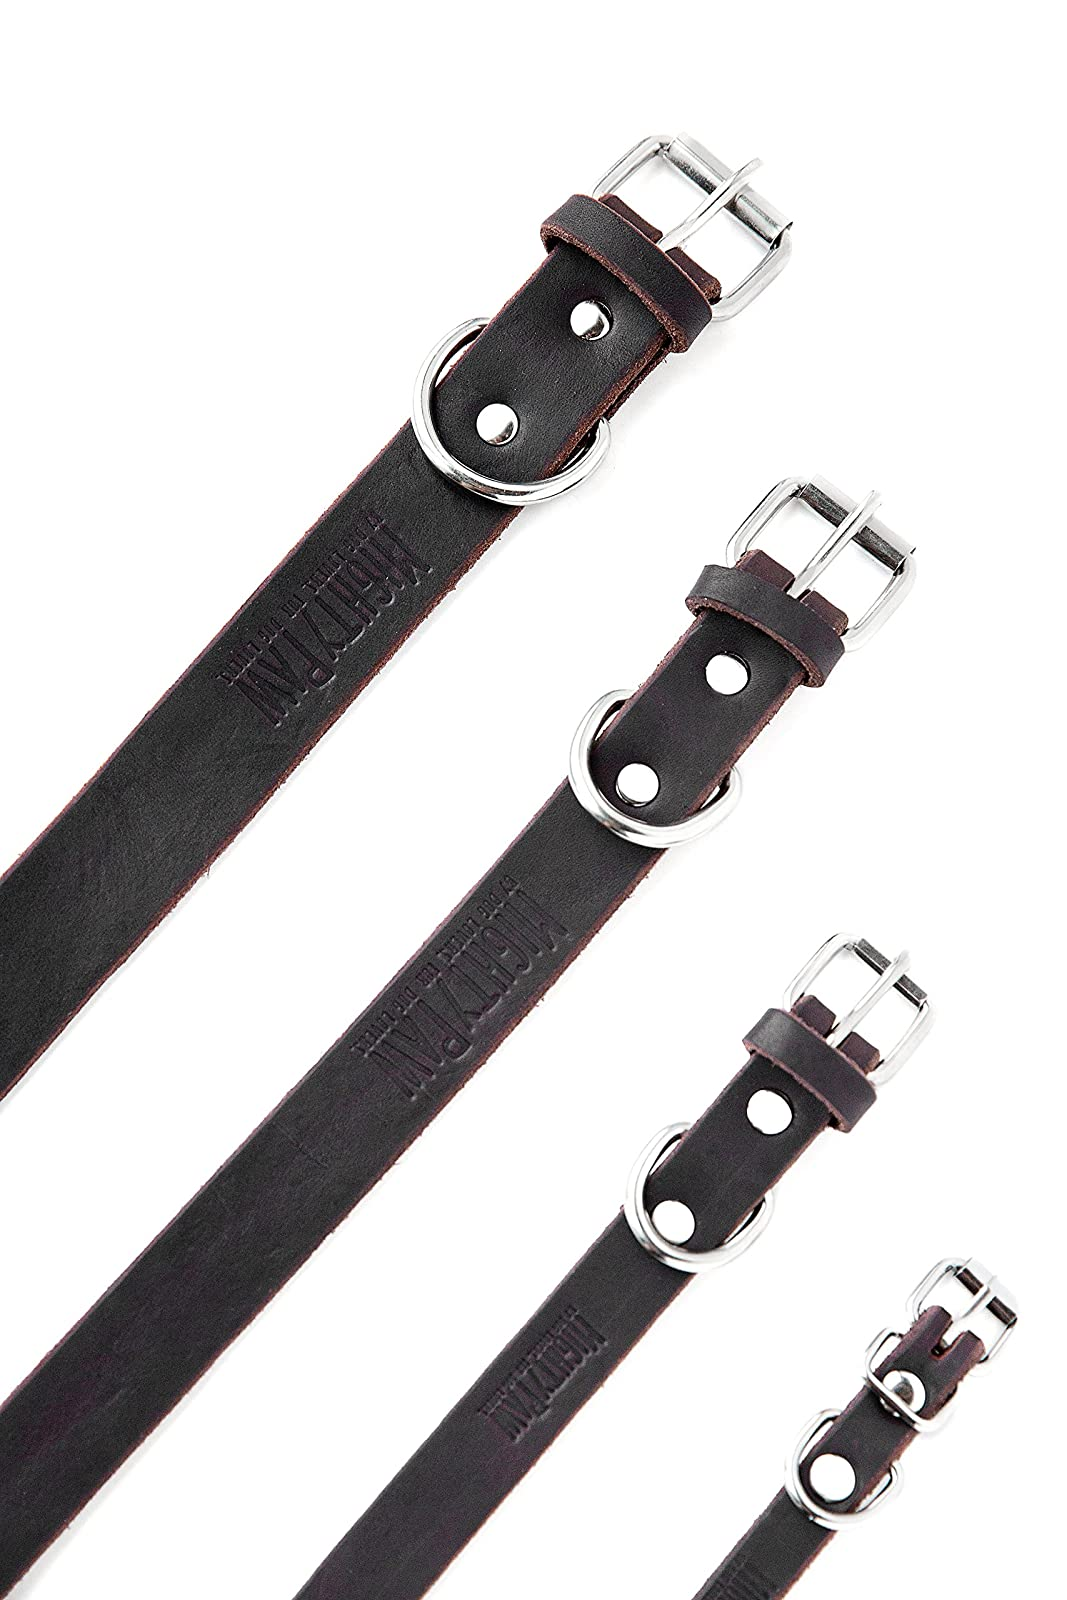 Mighty Paw Leather Dog Collar Super Soft Brown - 5